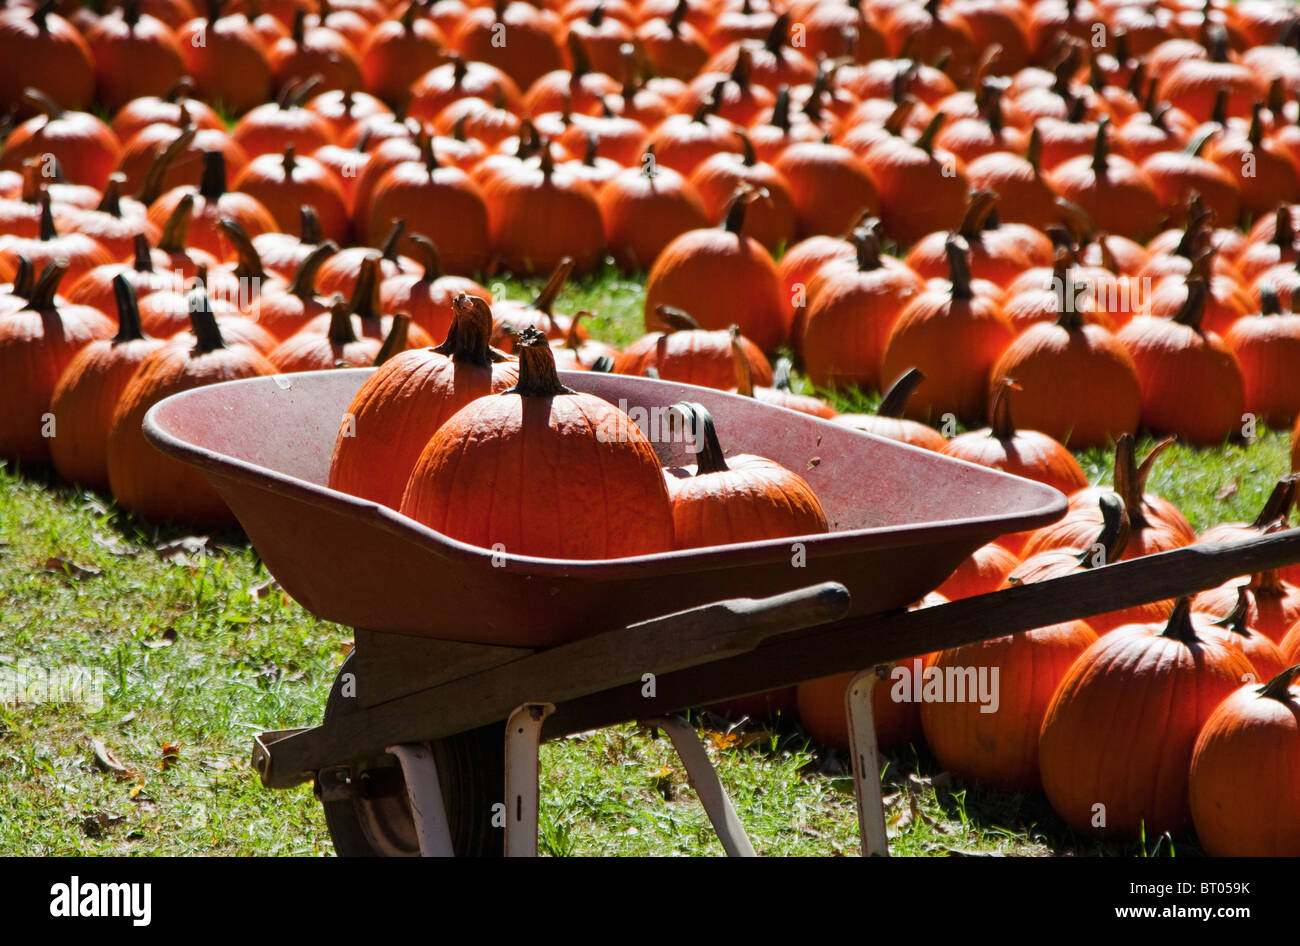 Red wheel barrel with pumpkins in it, in front of a pumpkin patch - Stock Image